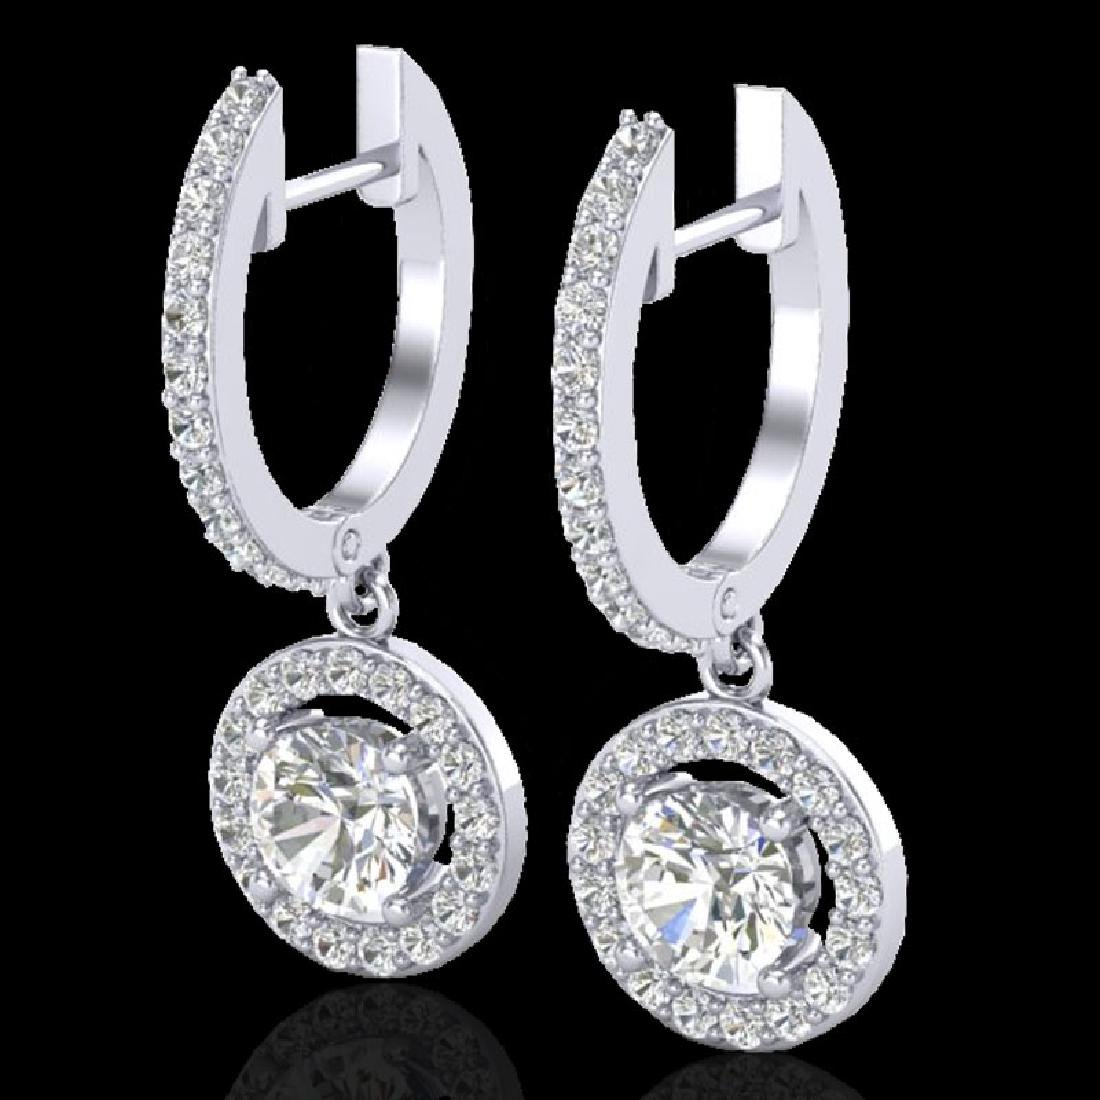 1.75 CTW Micro Pave Halo VS/SI Diamond Earrings 18K